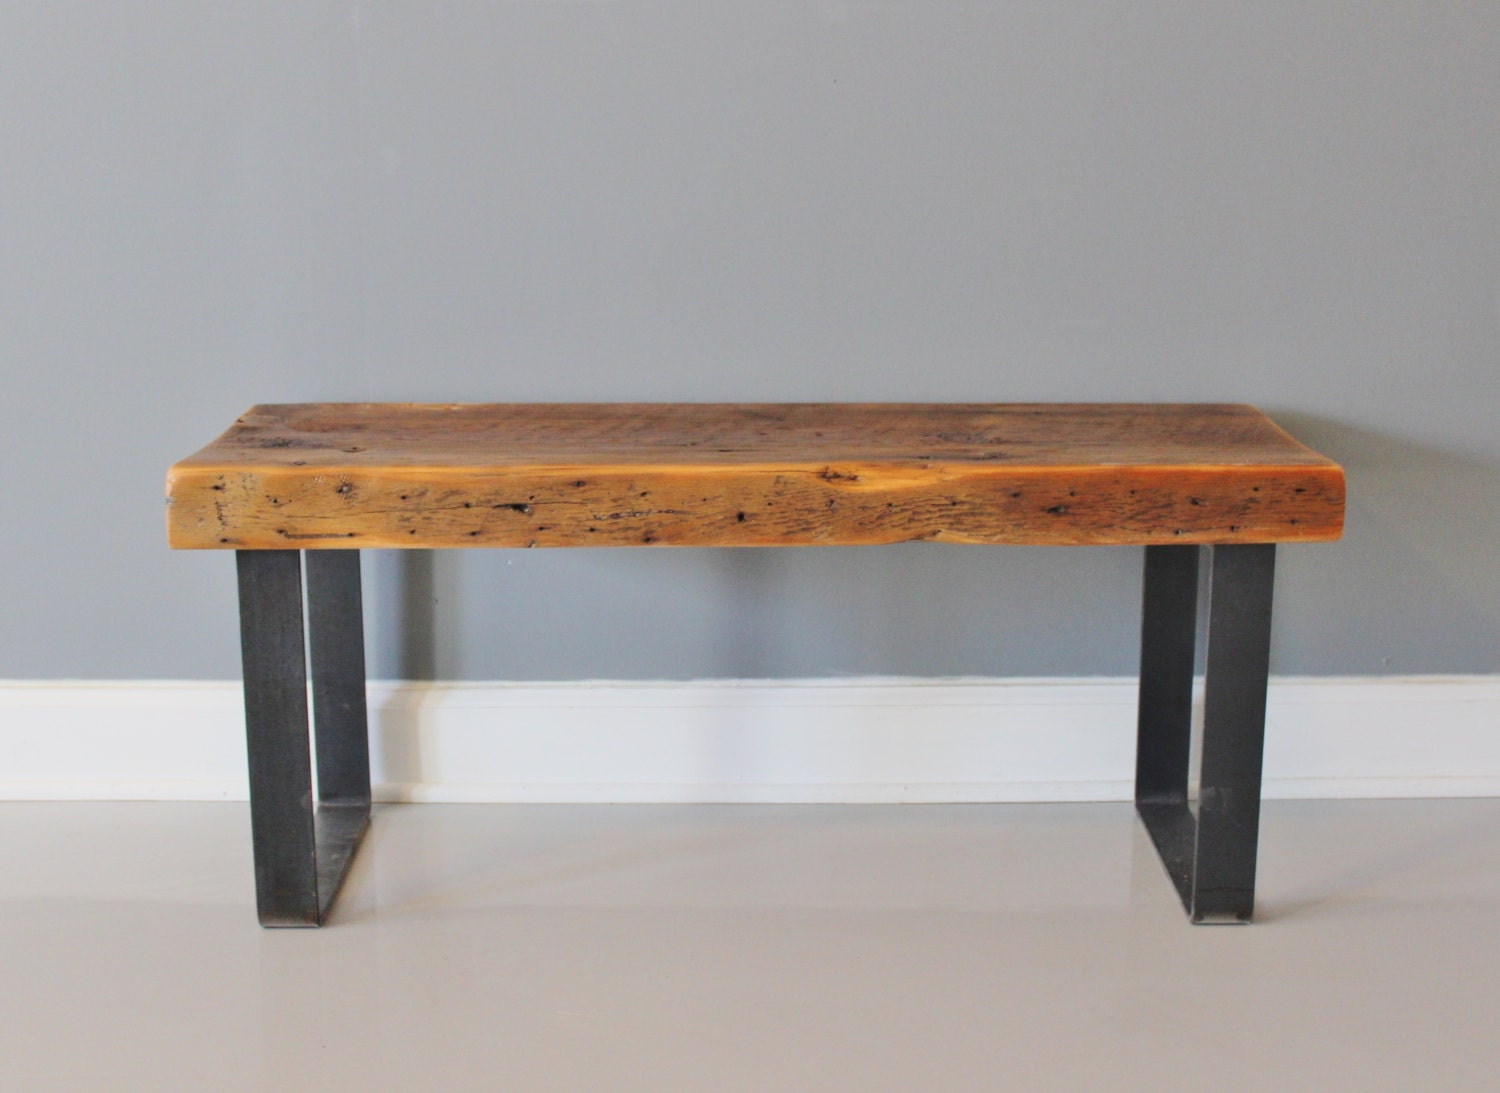 Bench Industrial Steel And Wood Reclaimed Wood Bench By Dendroco